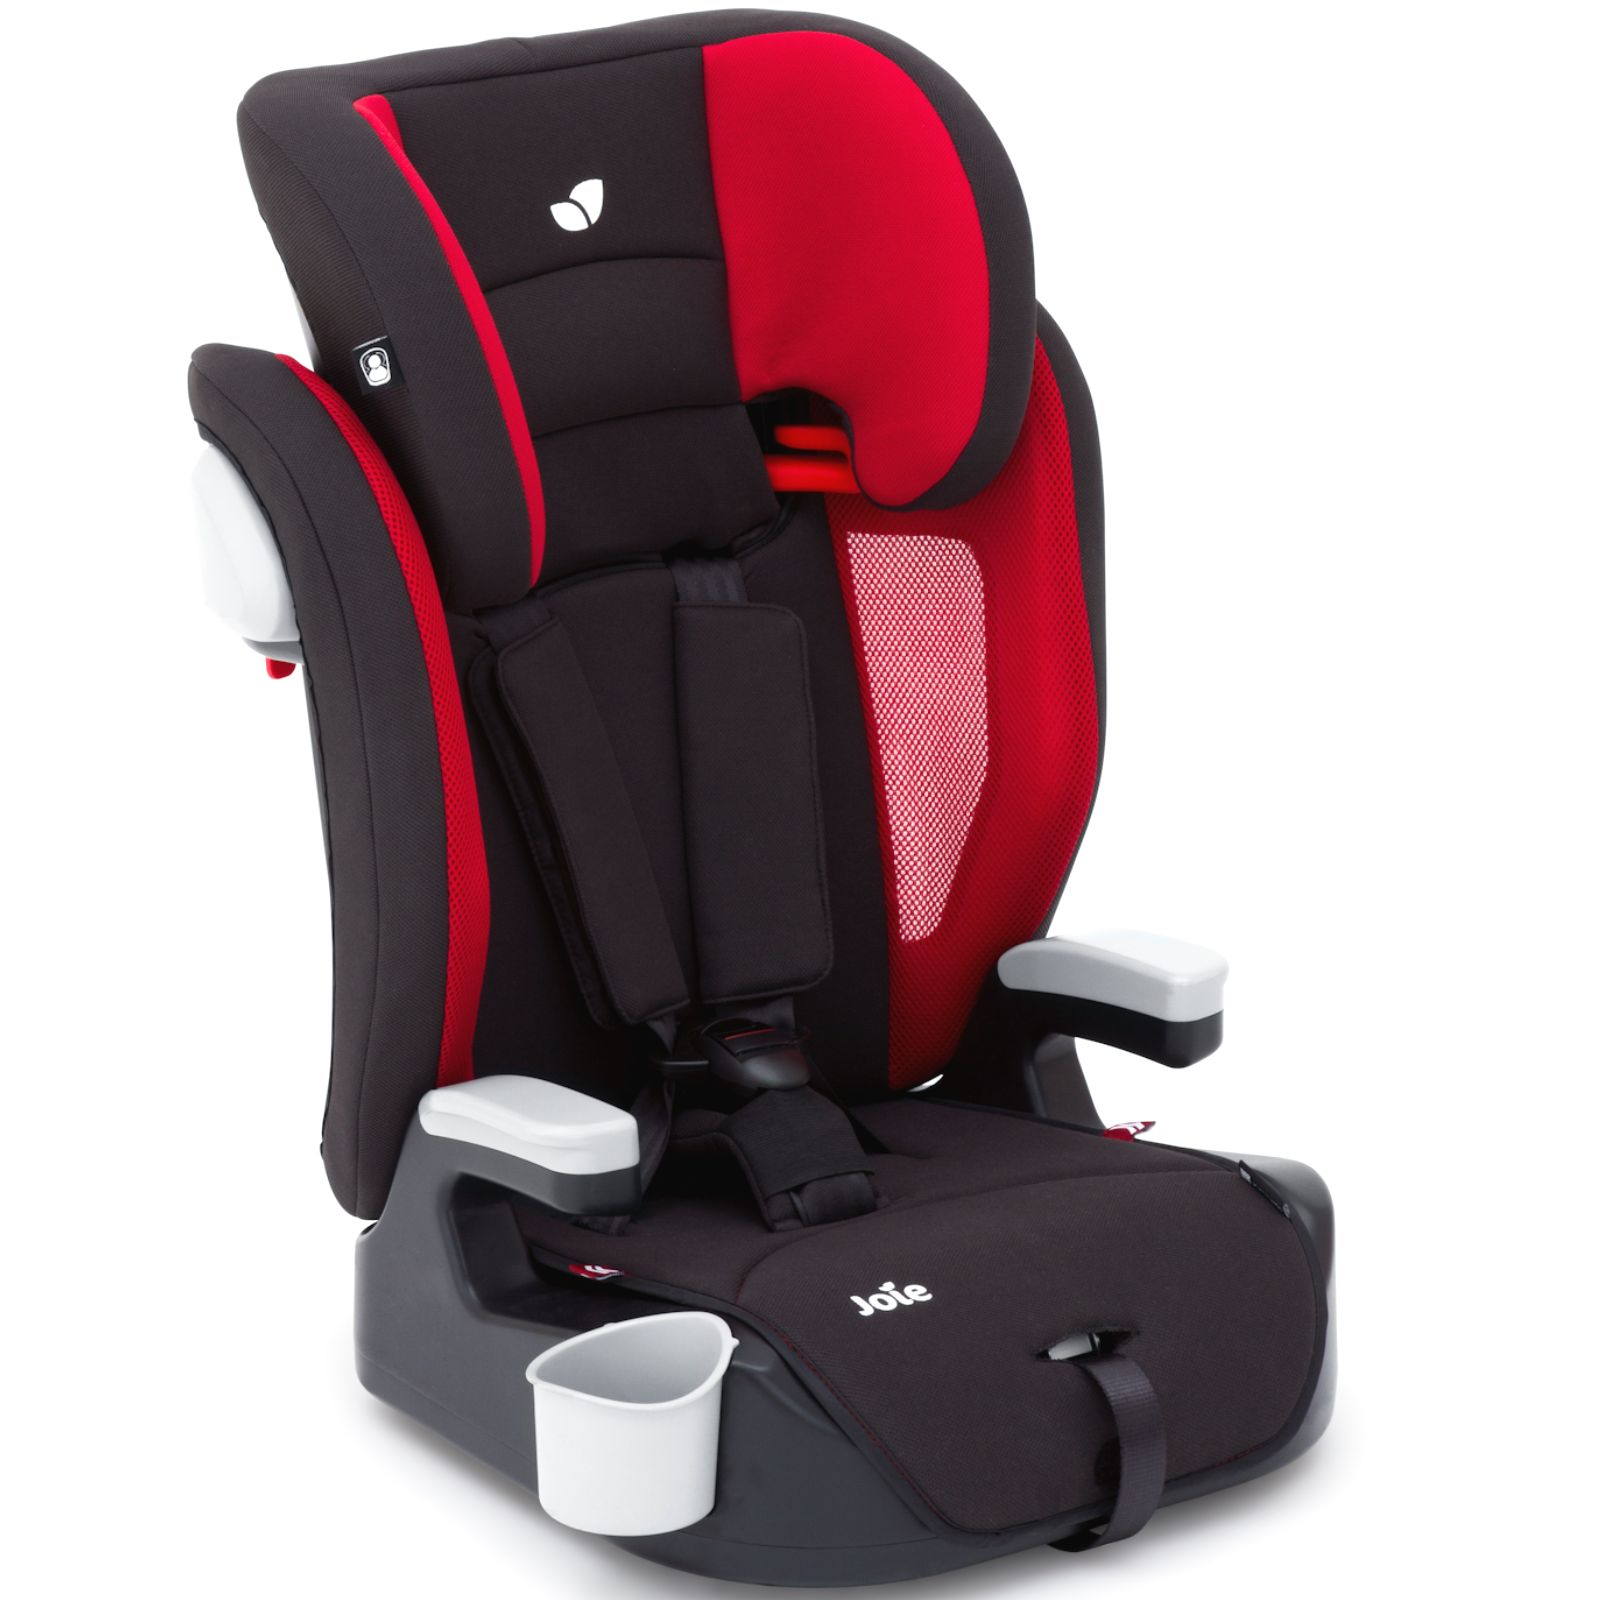 NEW JOIE ELEVATE GROUP 1 2 3 CAR SEAT CHERRY APPROX 9 ...